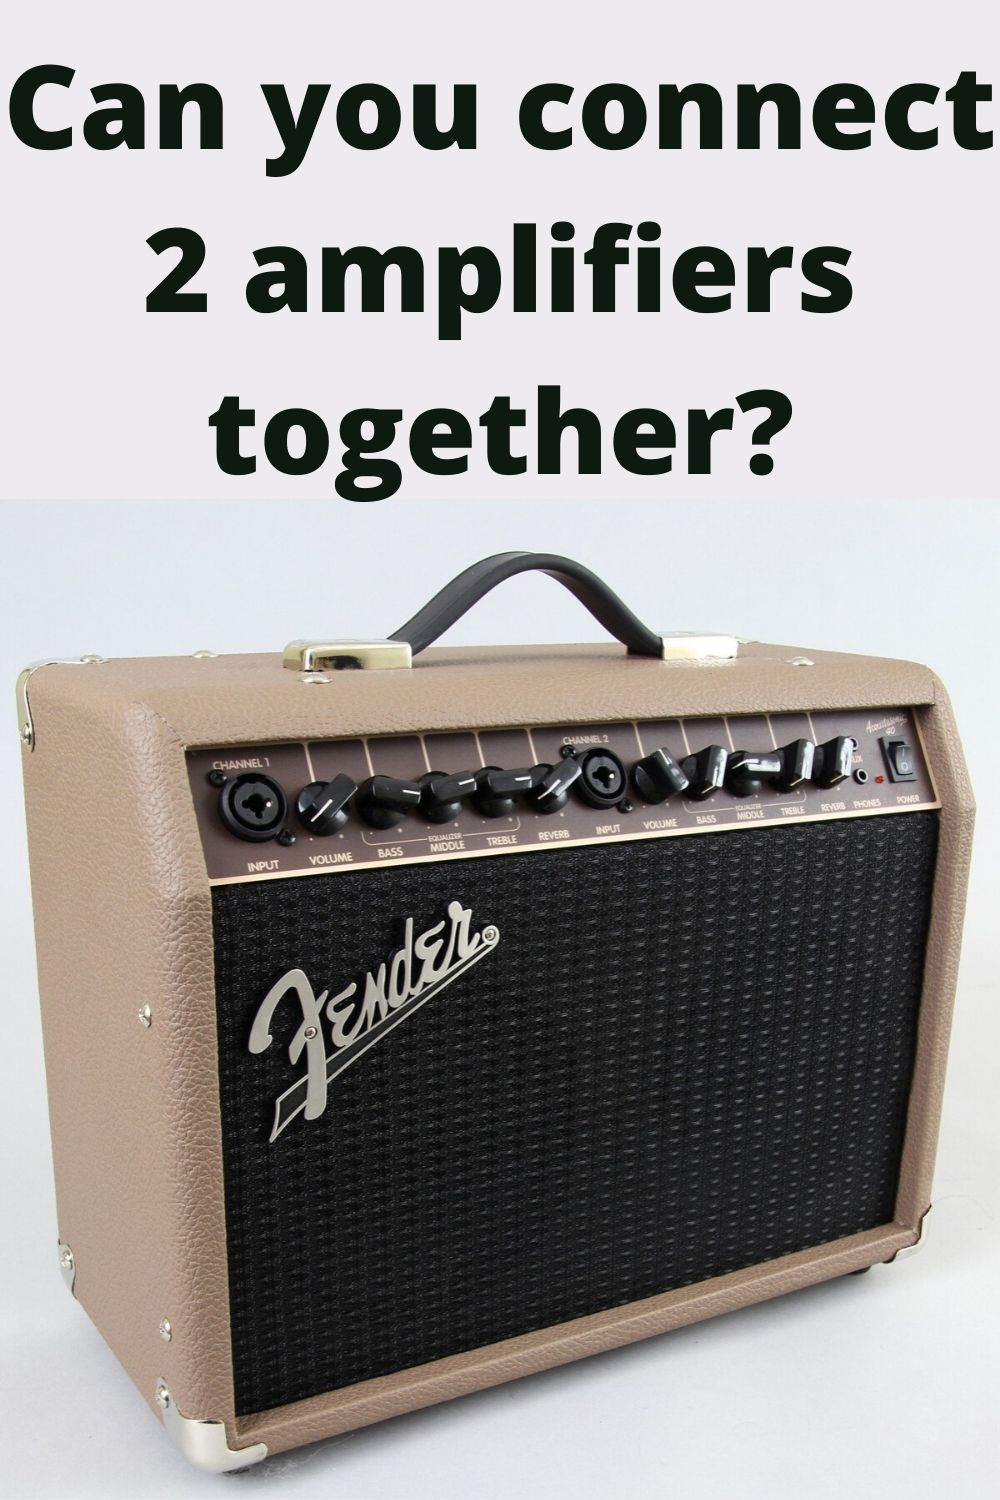 Can You Connect 2 Amplifiers Together Acoustic Guitar Amp Diy Guitar Amp Guitar Amp